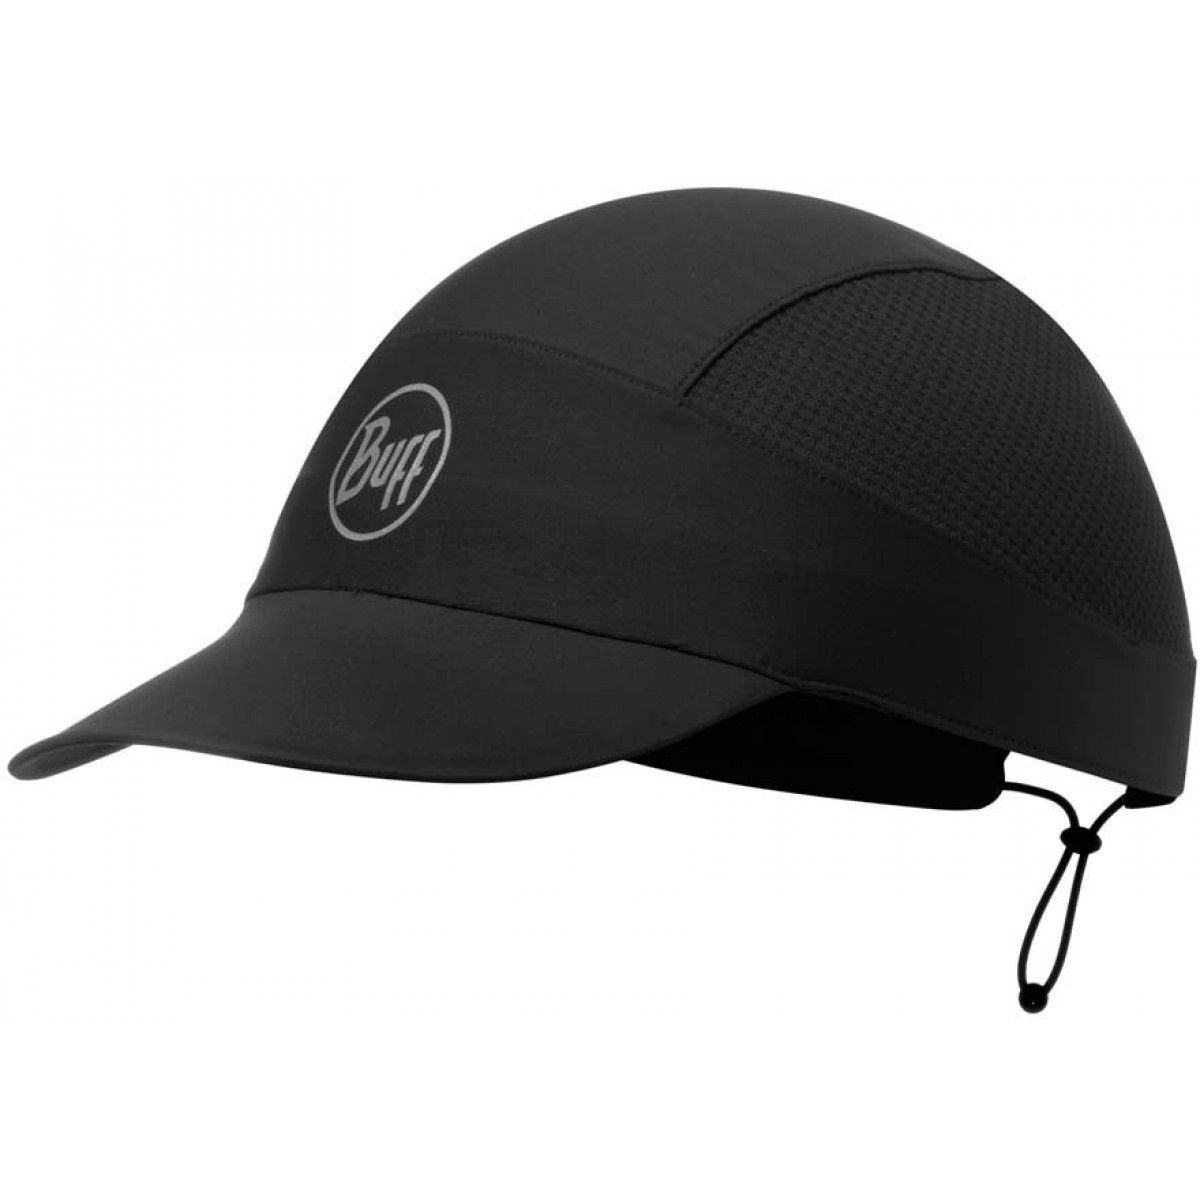 Buff Pack Run Cap - R-black